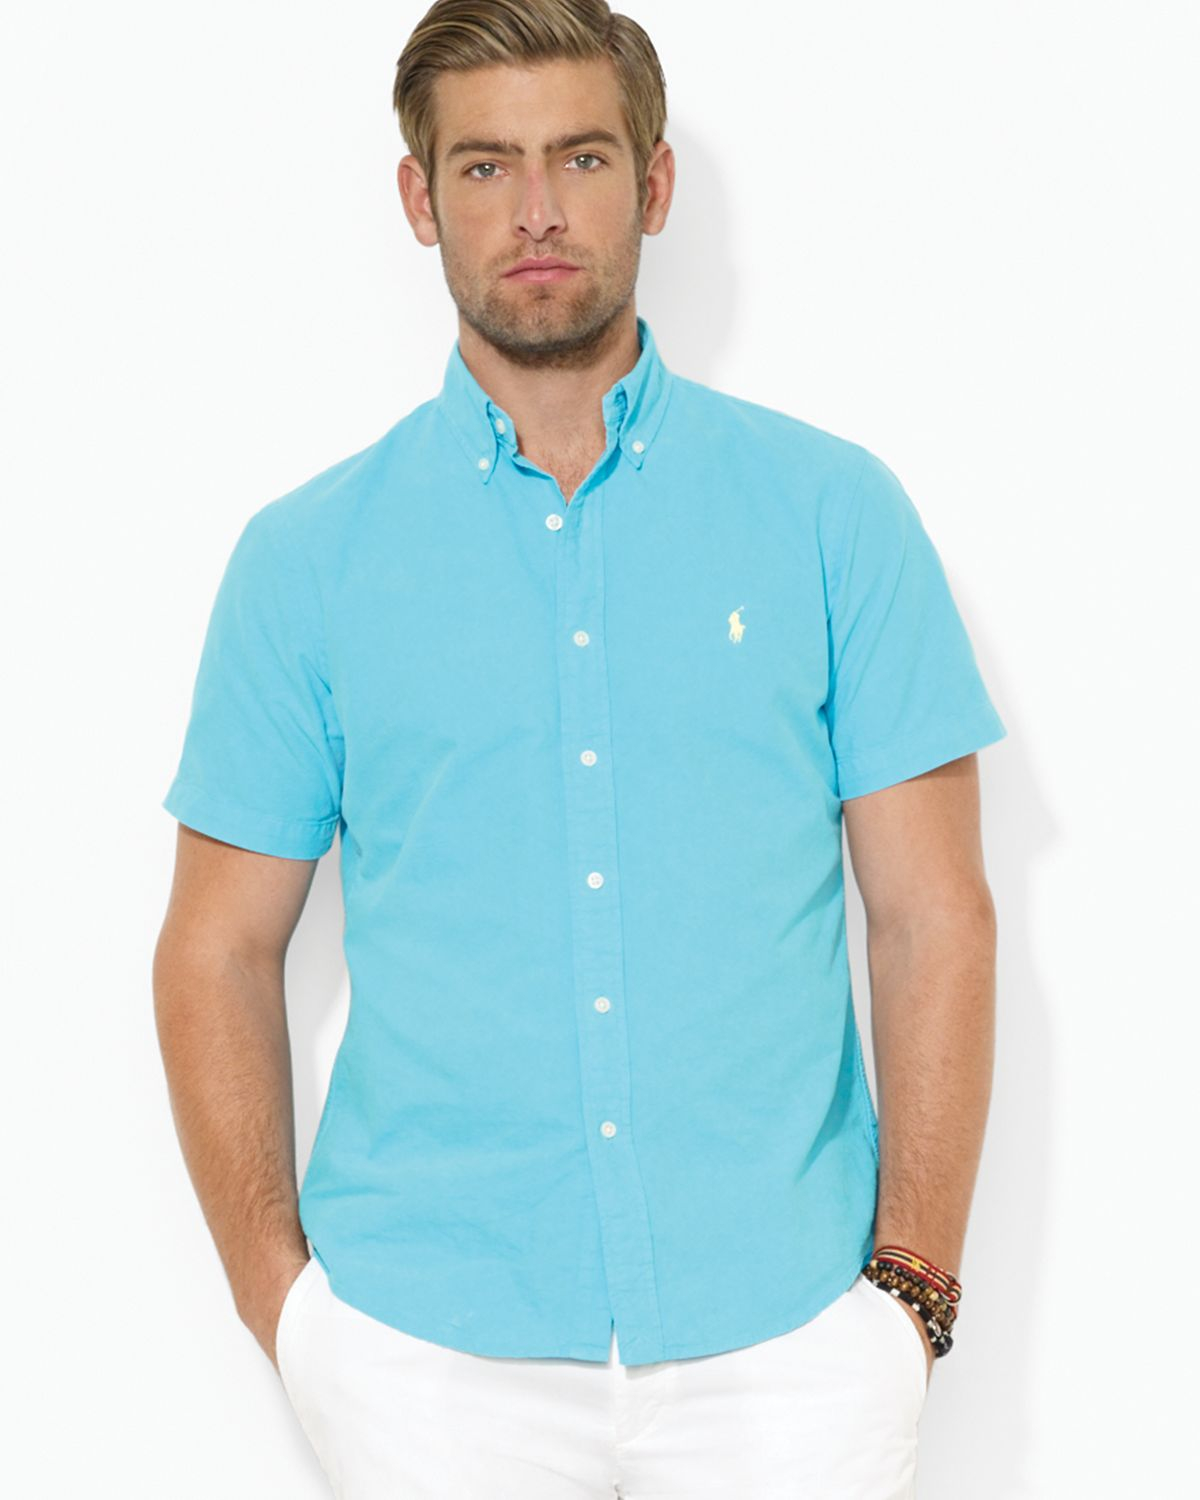 Ralph lauren polo custom short sleeved oxford button down for Athletic fit button down shirts